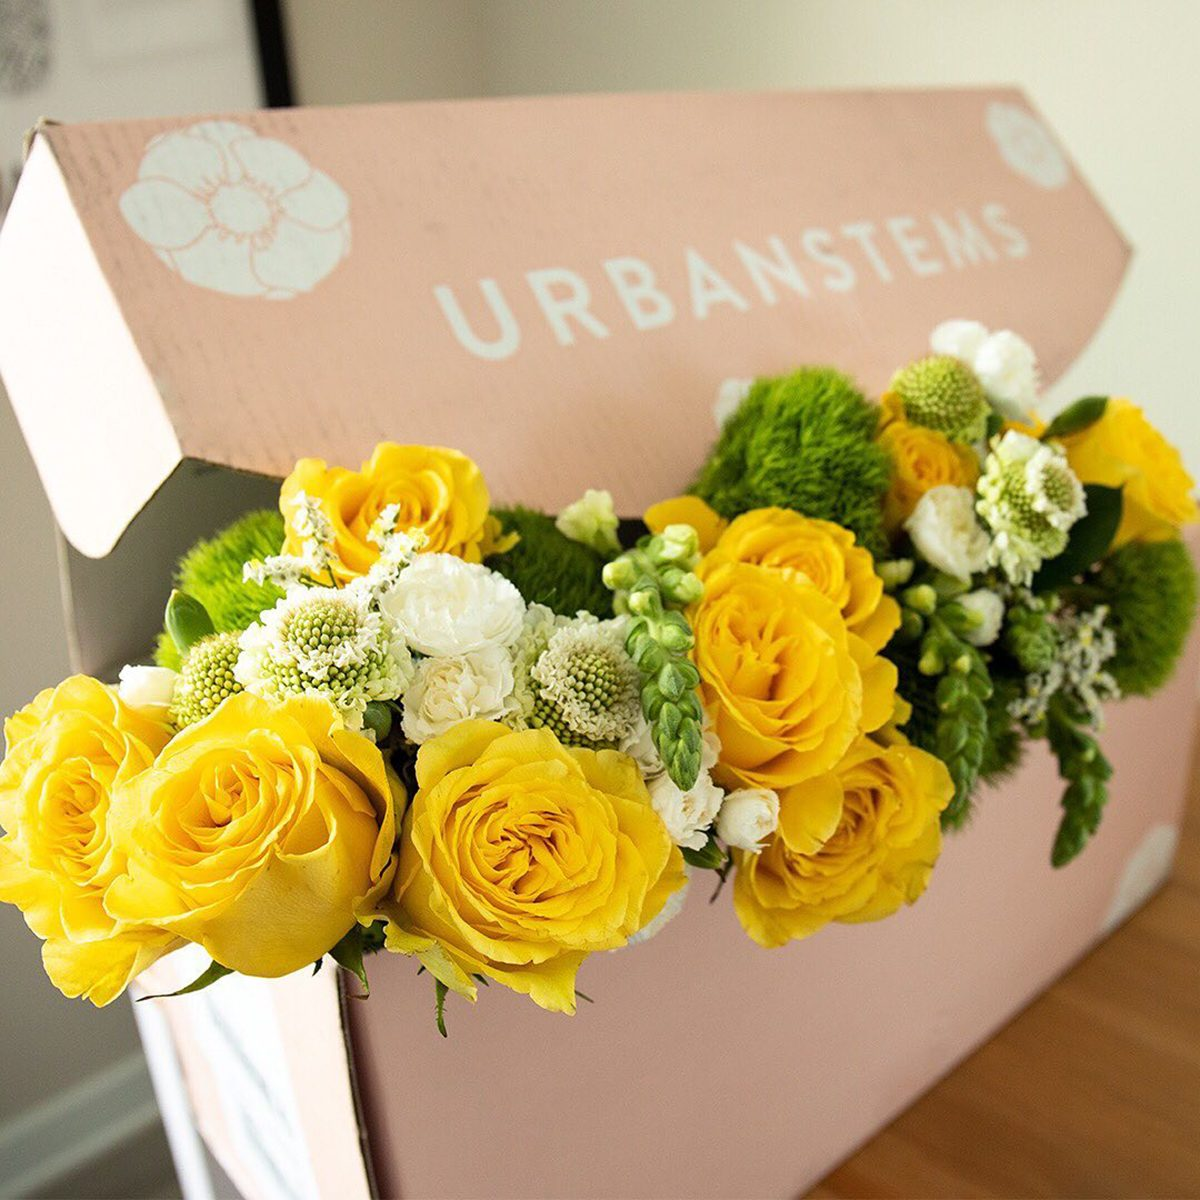 Urban Stems bouquet